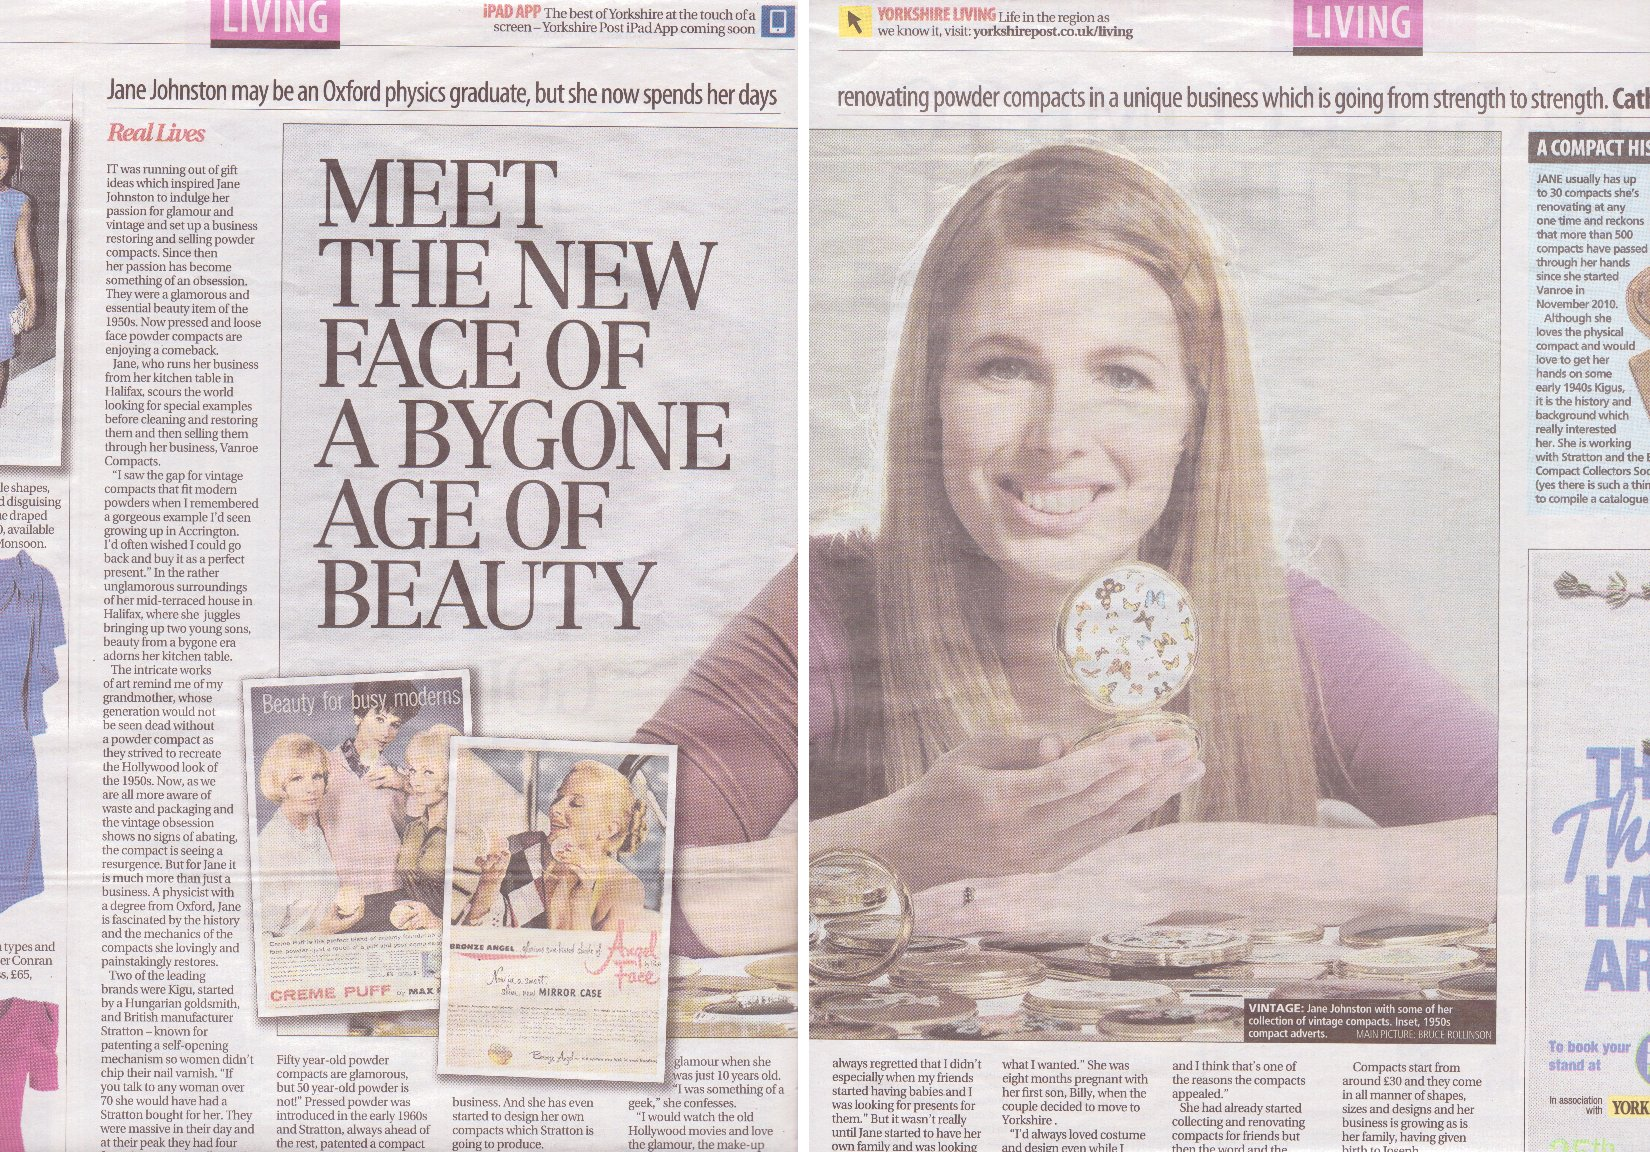 Yorkshire Post Powder Compact Article